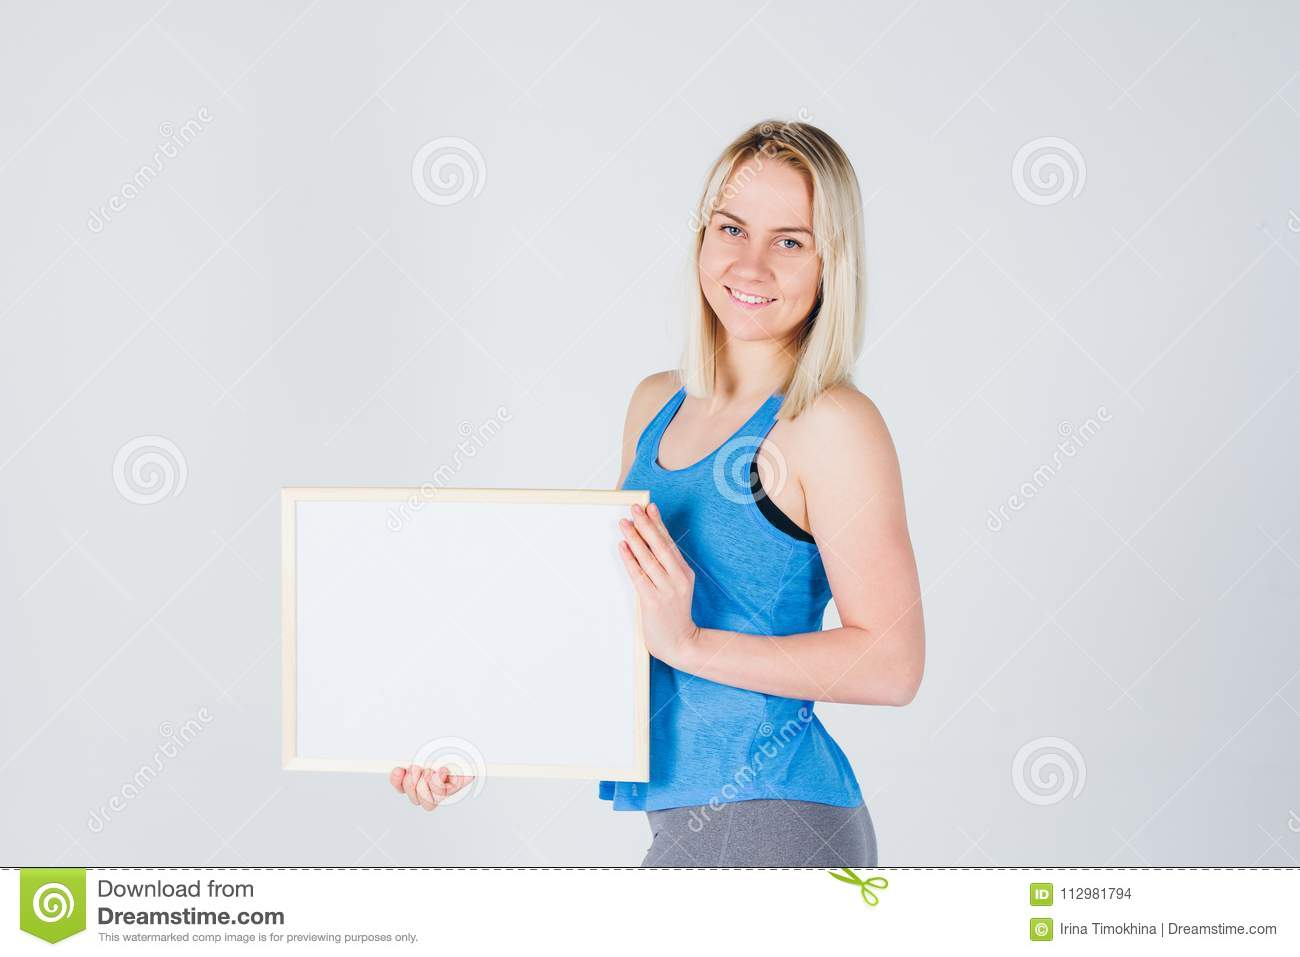 Girl in sportswear holding a frame with an ad